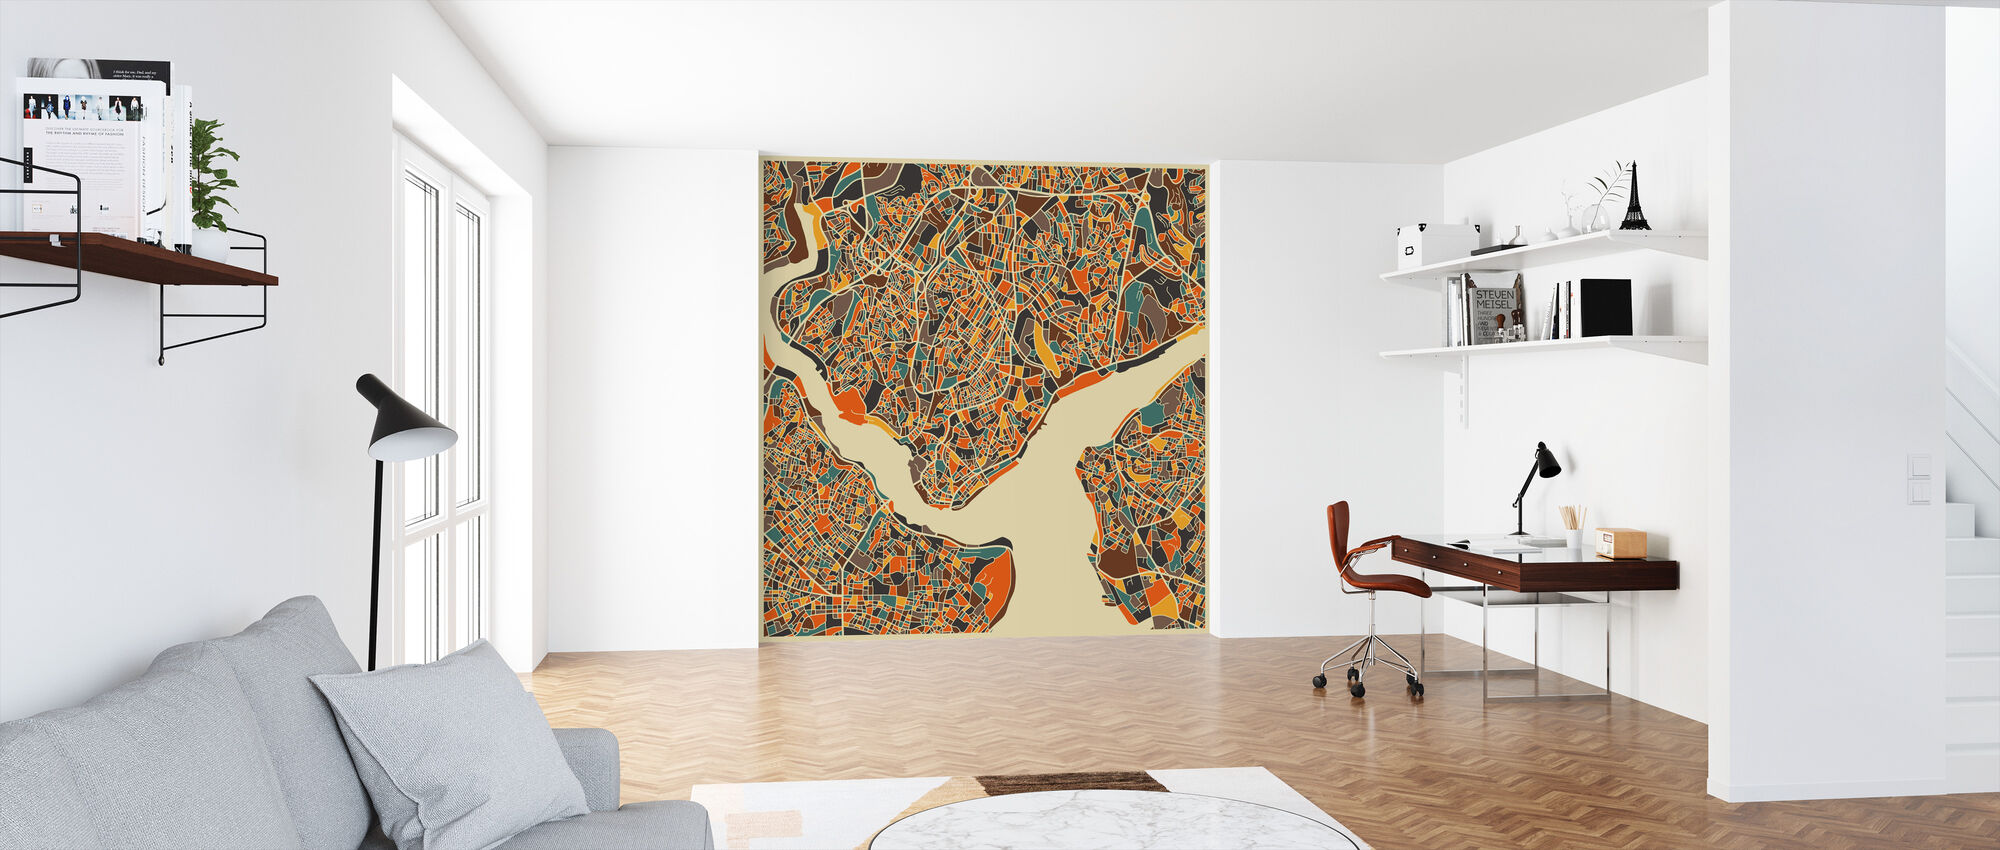 Multicolor Map - Istanbul - Wallpaper - Office